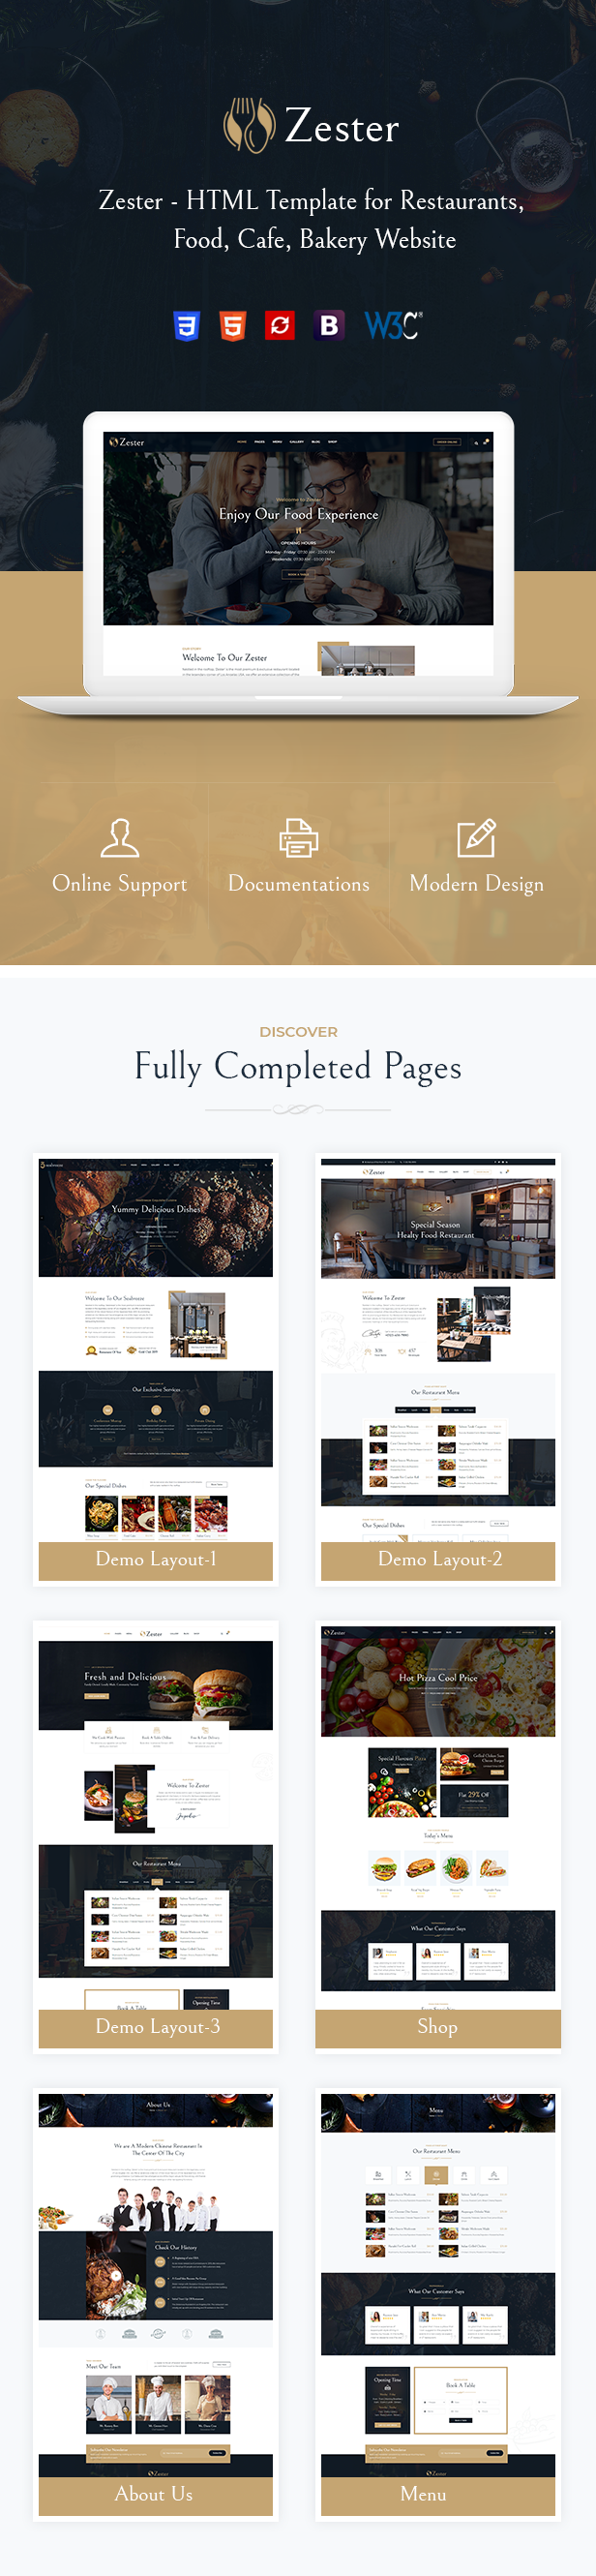 Zester Restaurant and Cafe HTML5 Template